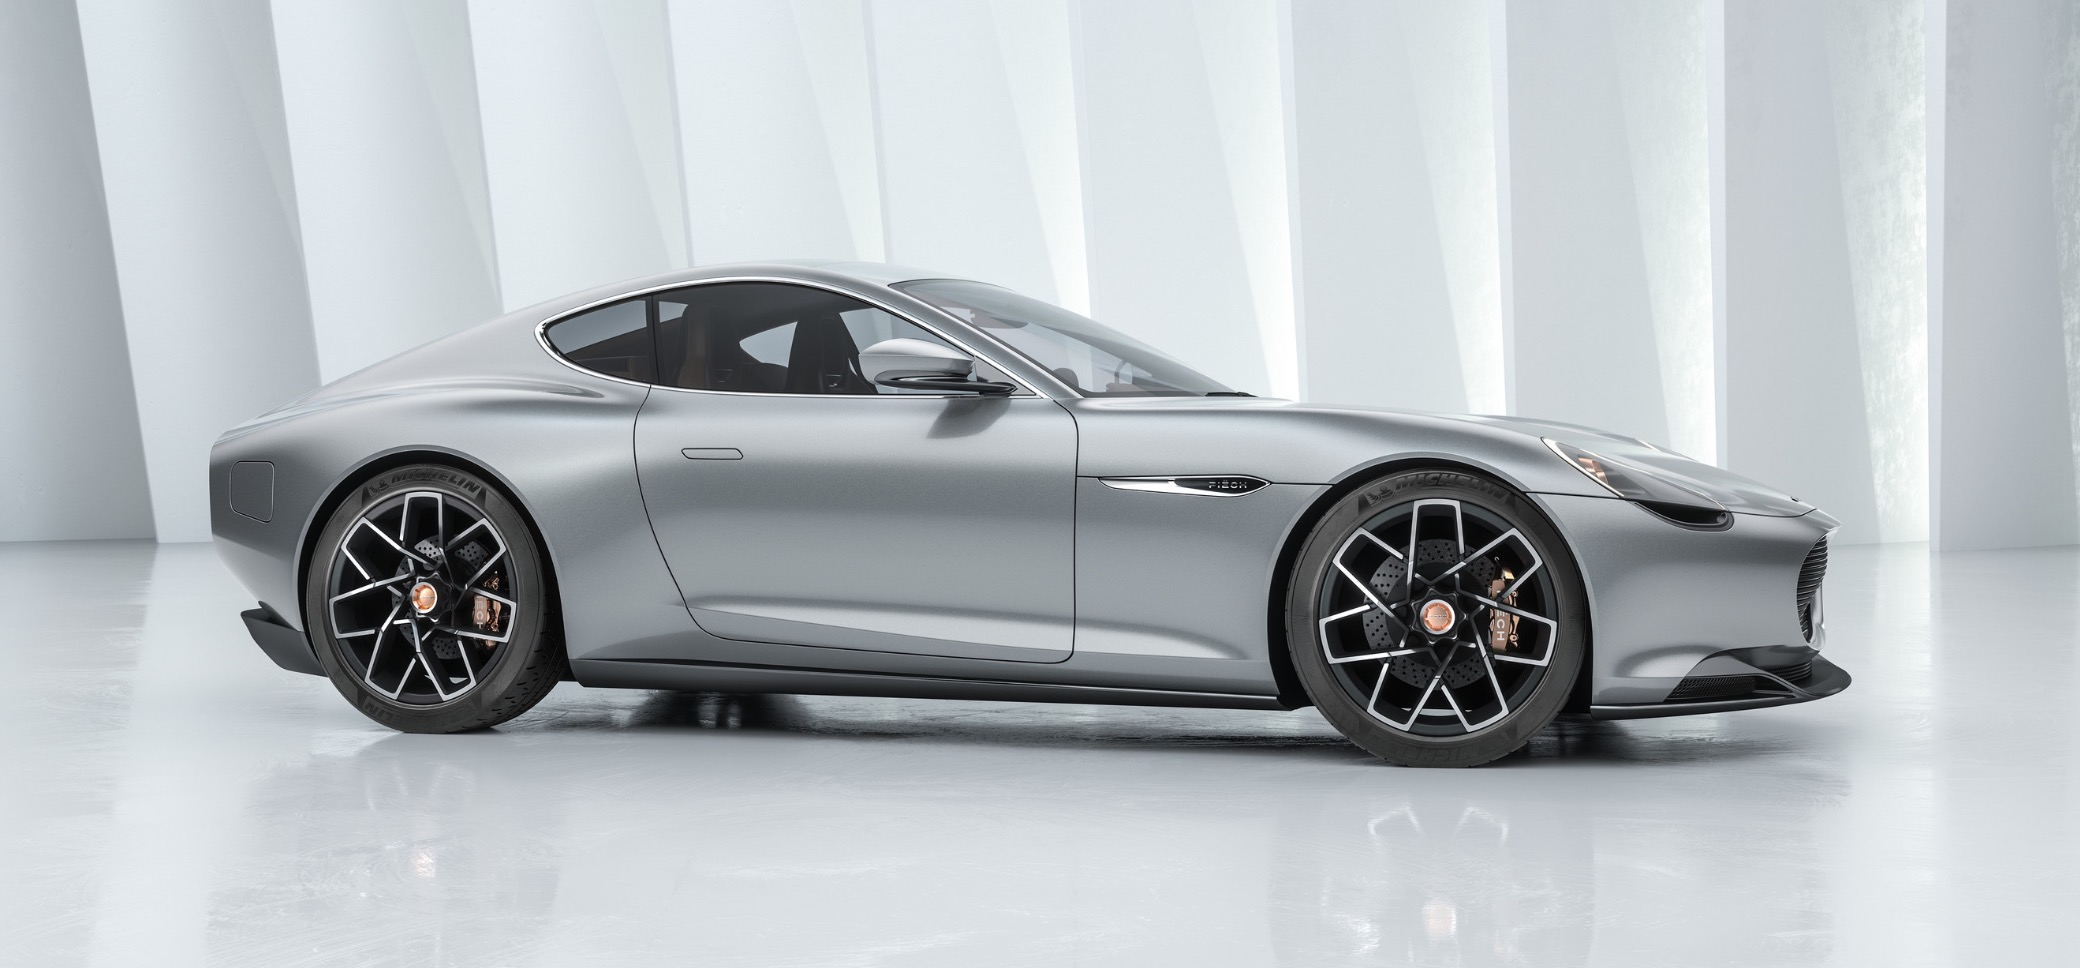 All-electric GT unveiled with over 300 miles of range and 5-min charging enabled by mysterious battery